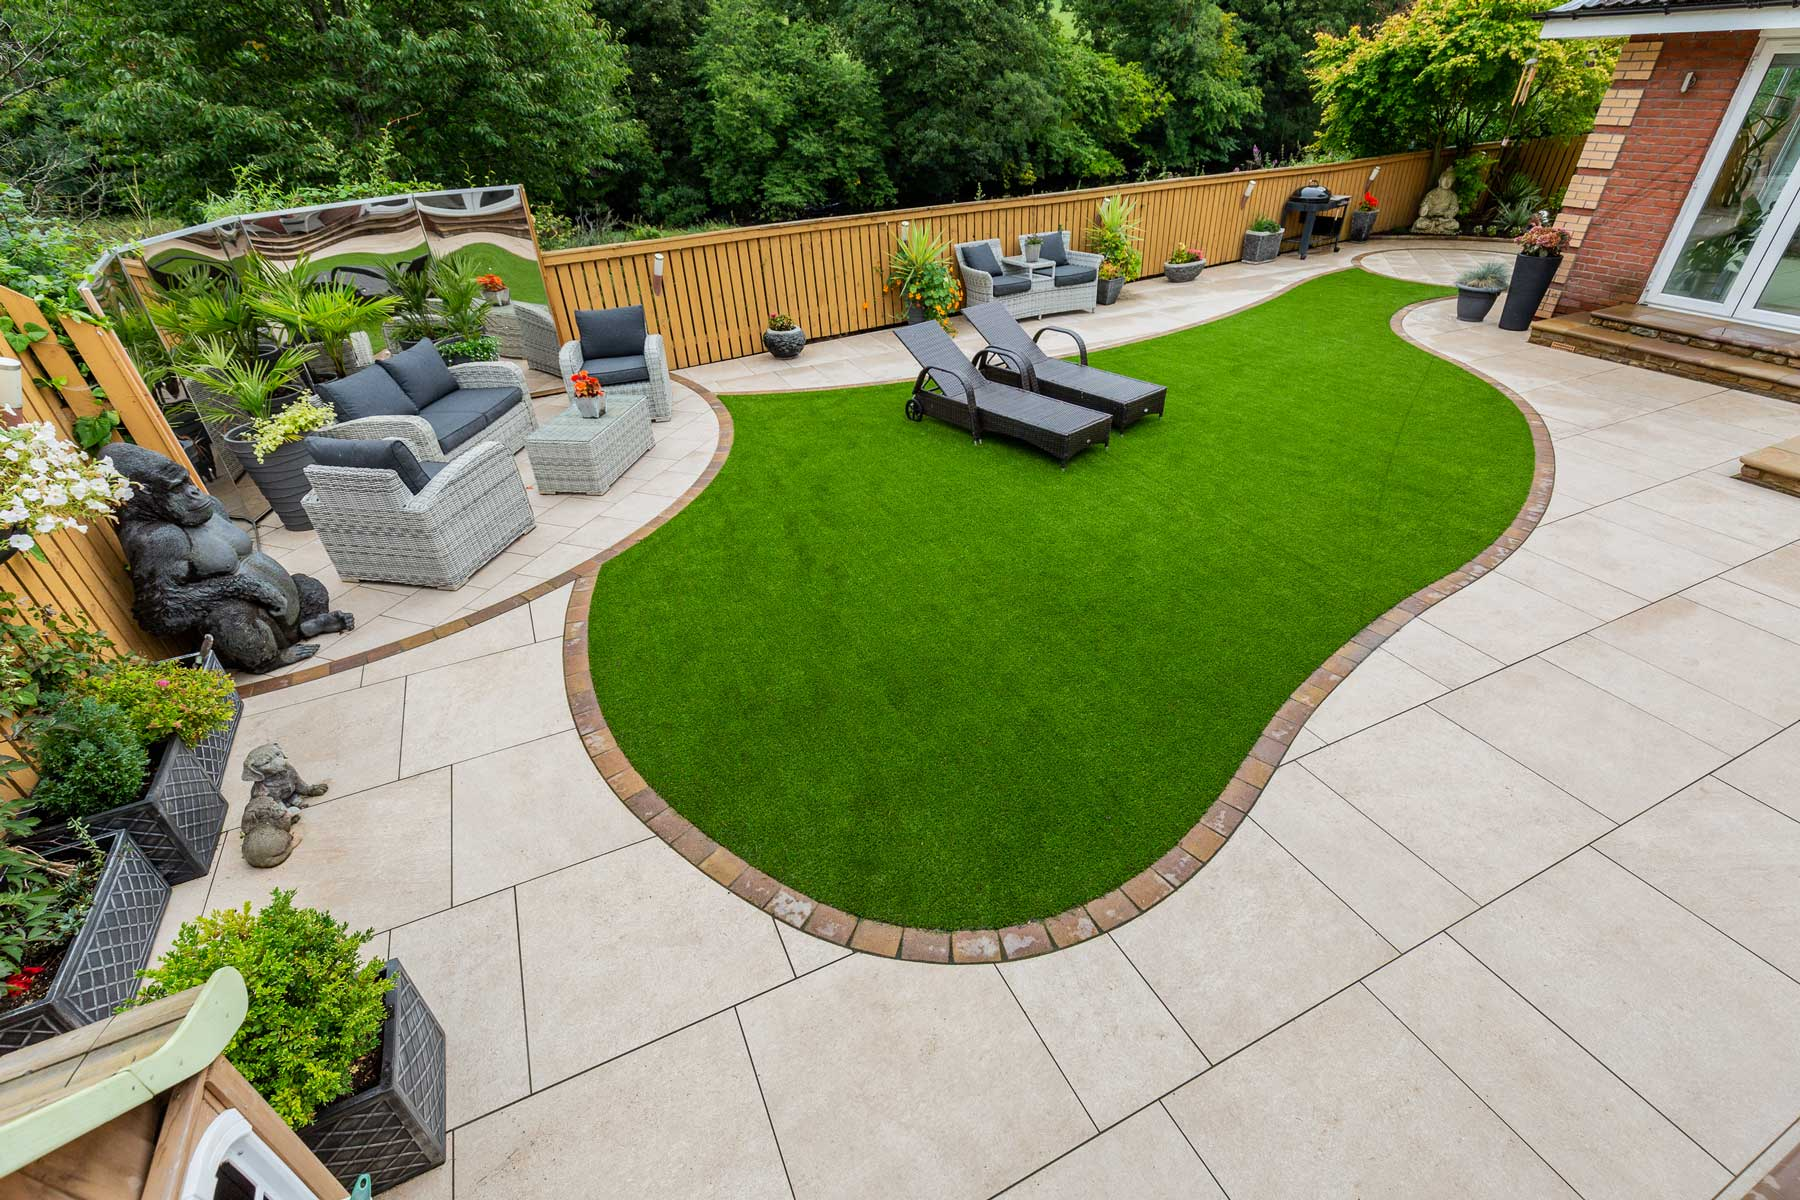 Patio, steps, artificial grass & landscaping by Stow Construction & Landscaping in Smithycroft, Hamilton 2018 using Marshalls Symphony Vitrified Buff, Drivesett Savannah Autumn, Fairstone Sawn Versuro bull-nosed steps Golden Sand, Fairstone walling Autumn Bronze, Evergreen Village Green 30mm artificial grass.